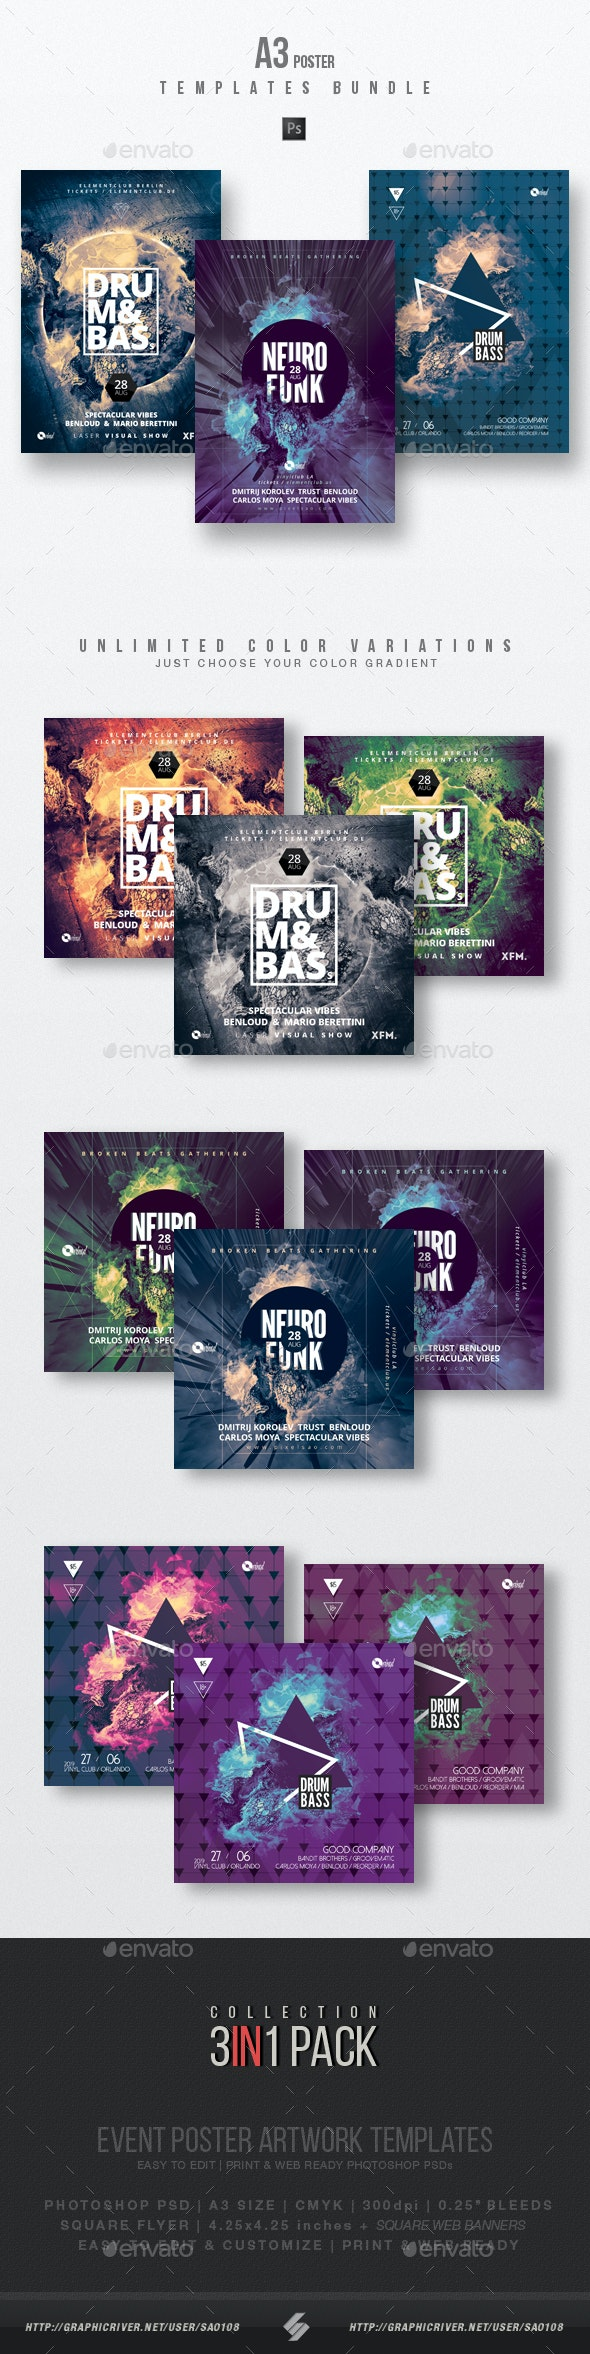 Drum and Bass vol.4 - Party Flyer / Poster Templates Bundle - Clubs & Parties Events